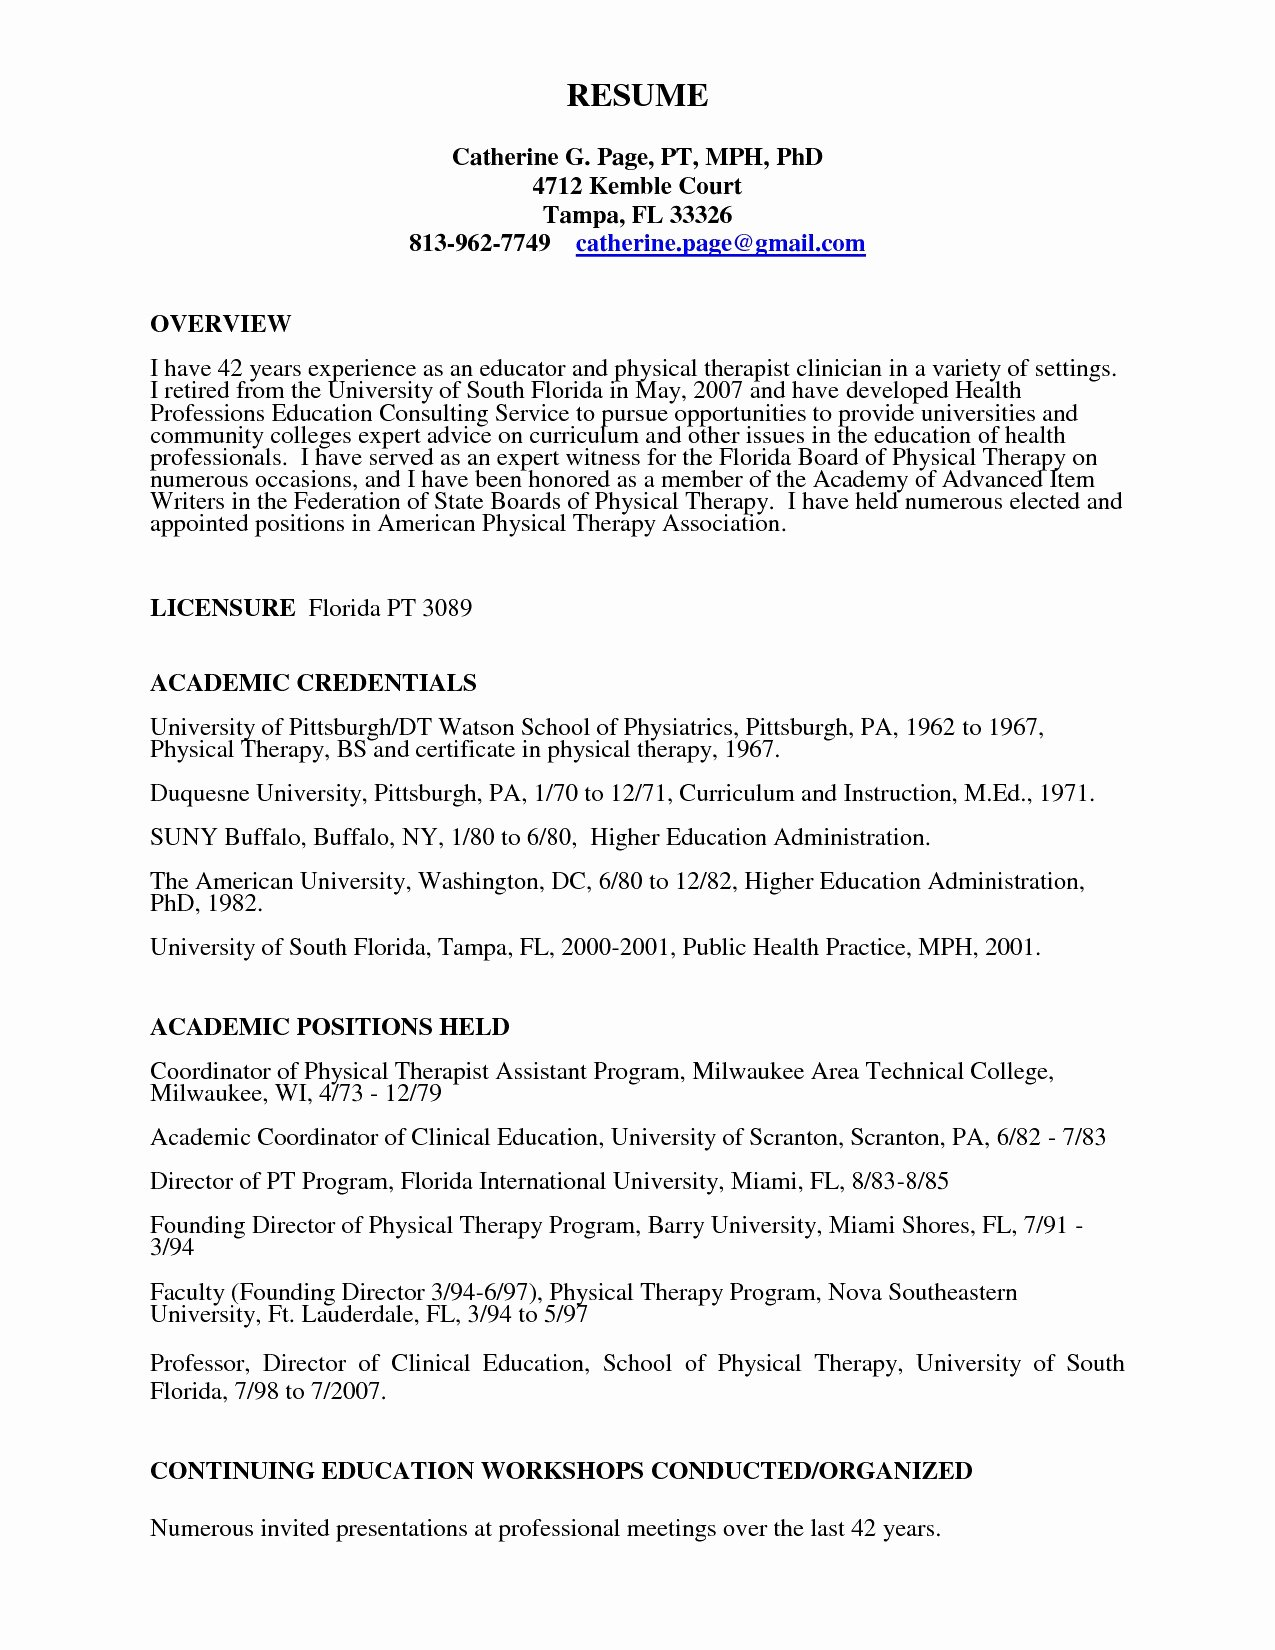 Physical therapy Resume Template Awesome Sample Mental Health Counselor Resume Valid Physical